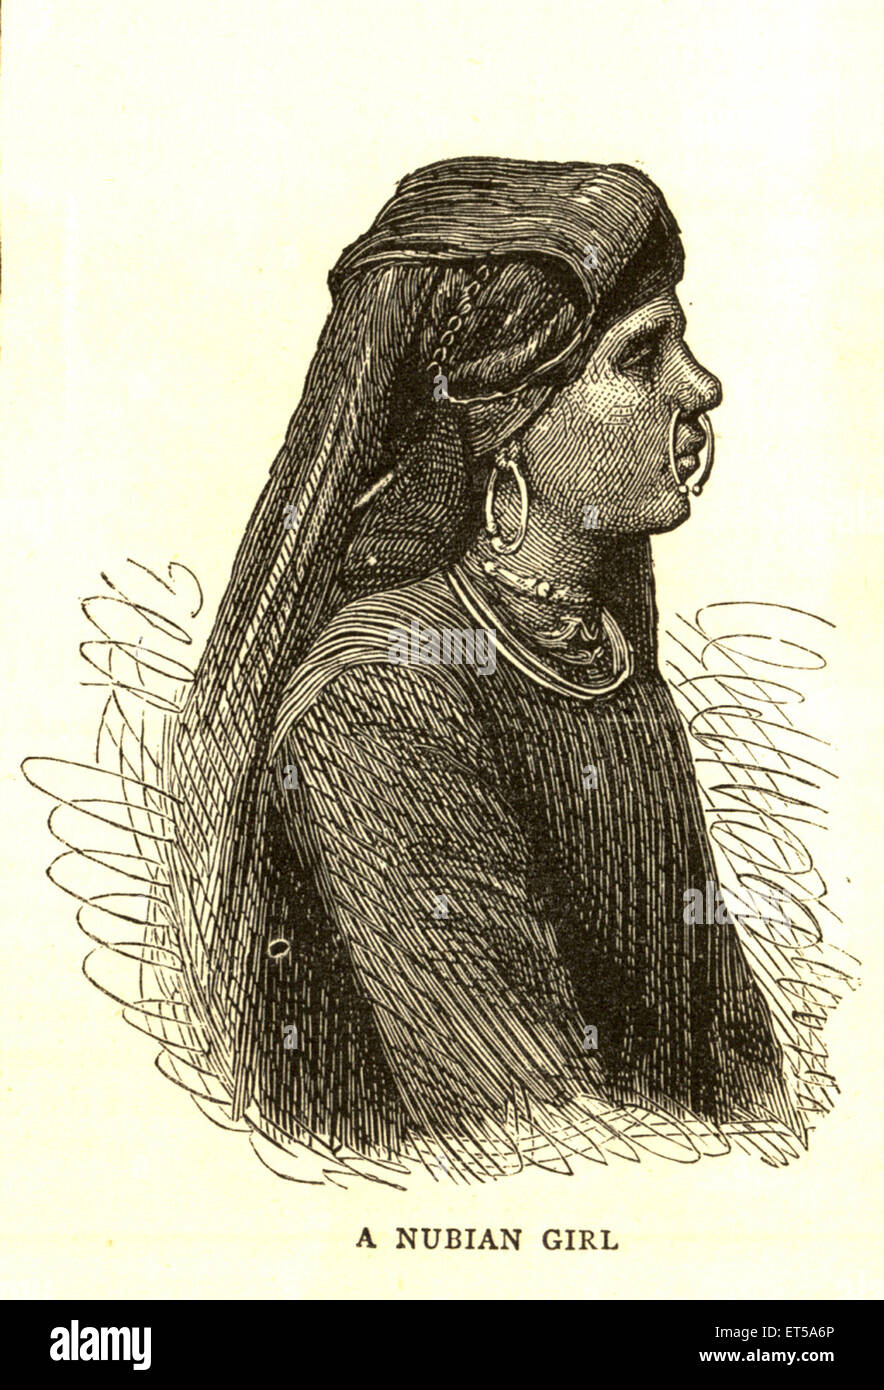 Lithographic portraits A Nubian Girl - Stock Image